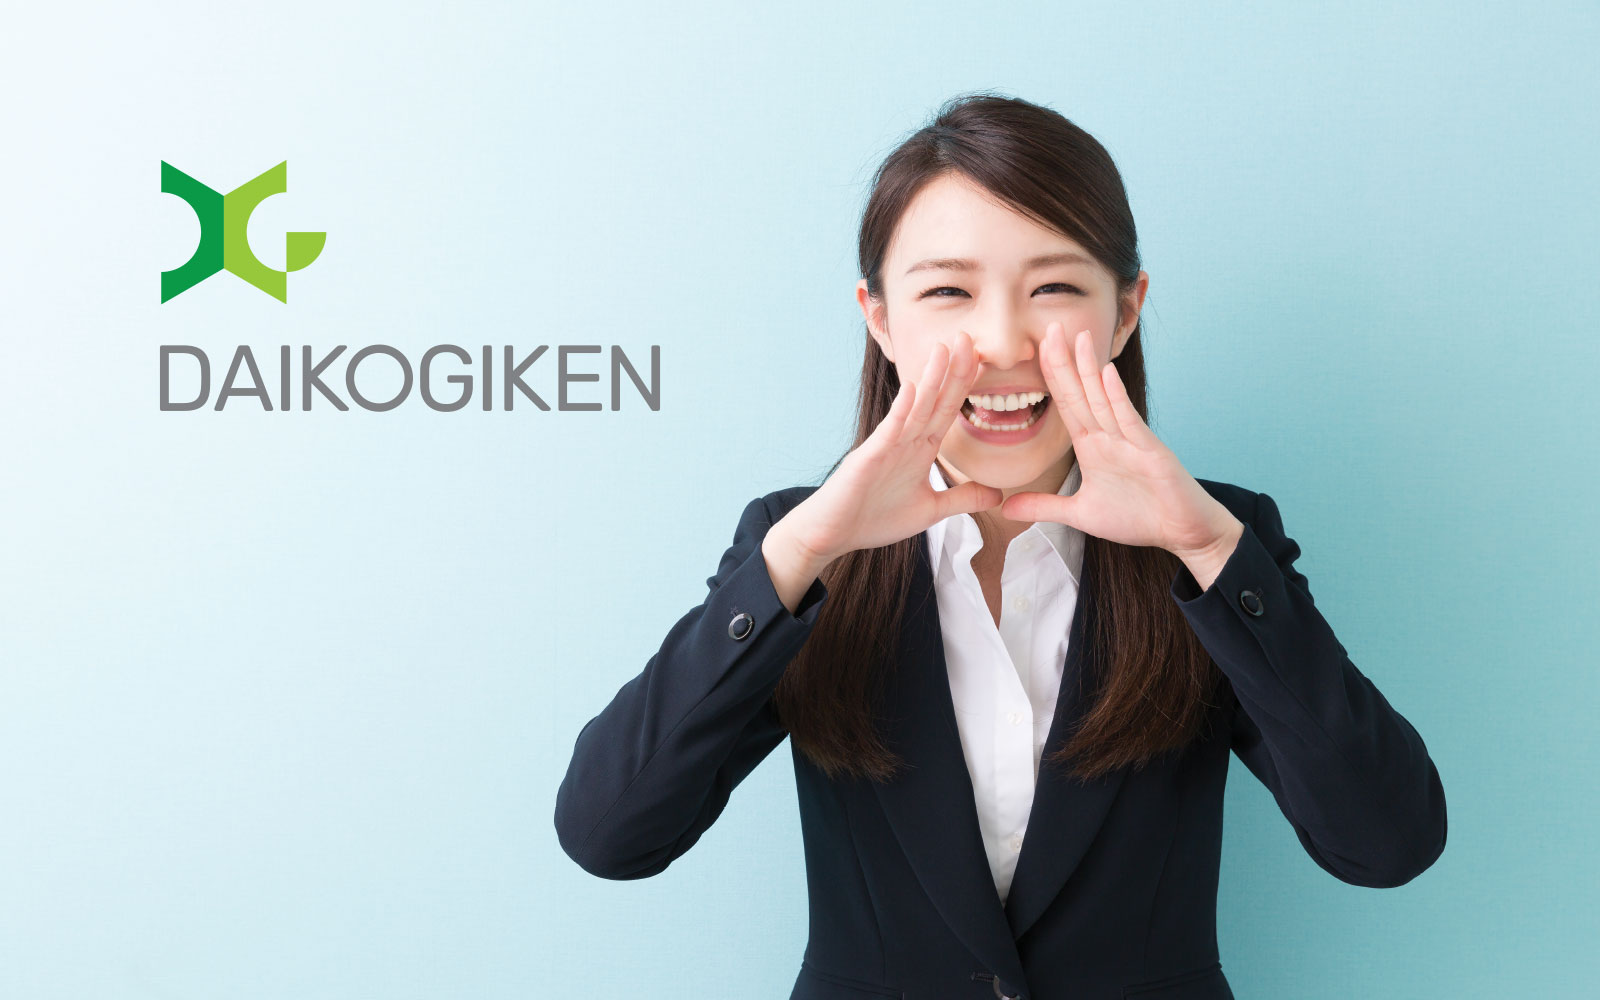 daikogiken corporate identity